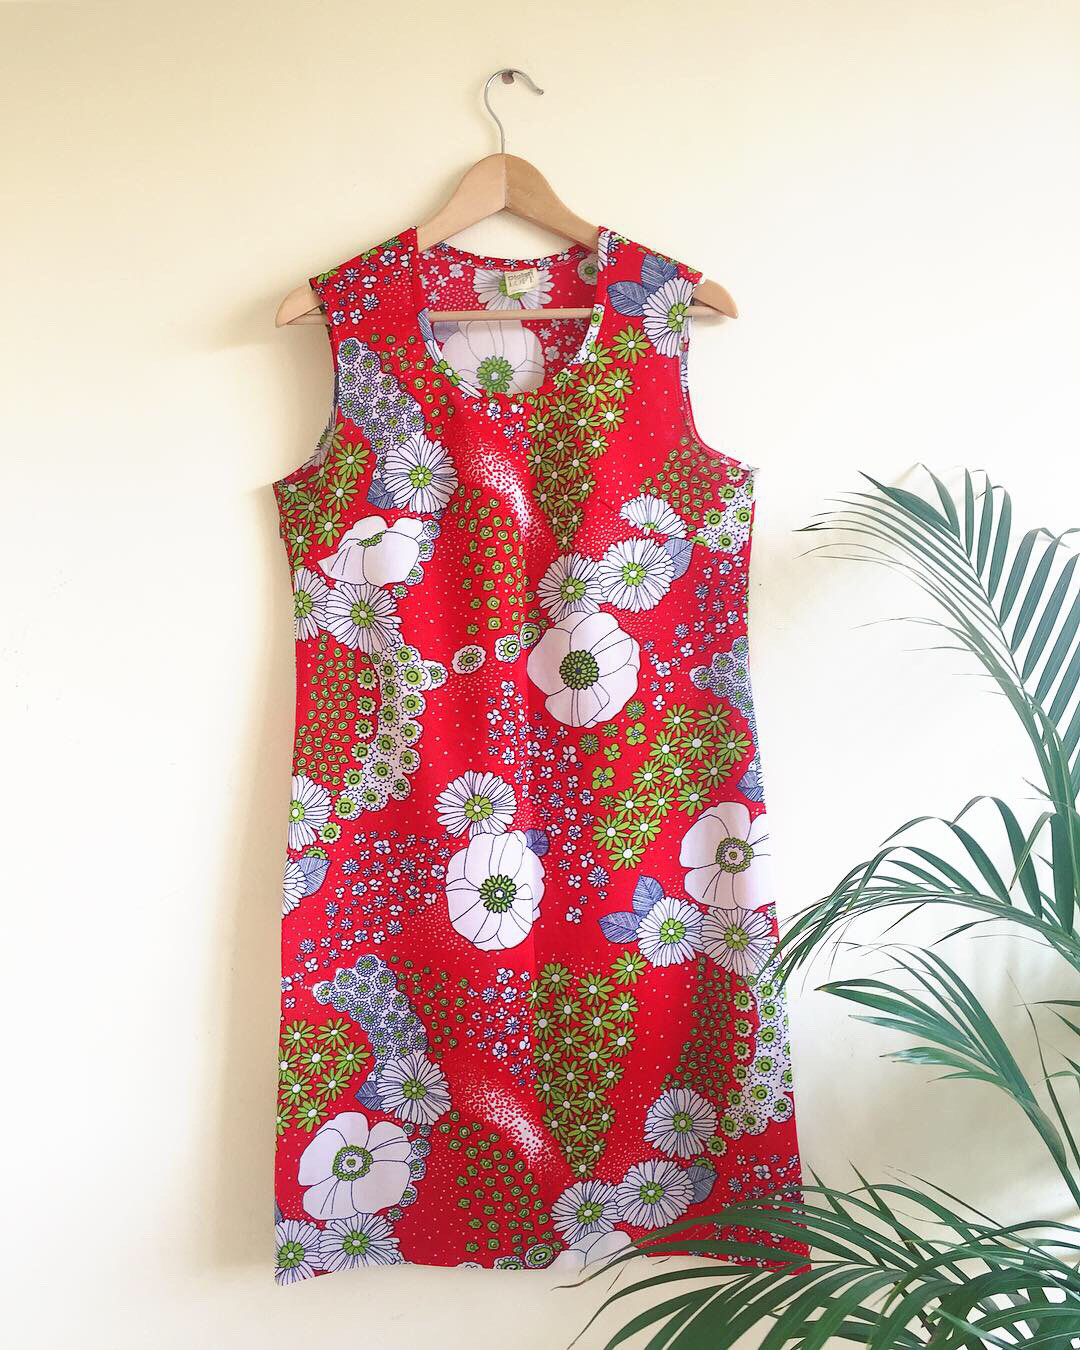 VINTAGE 1960S FLORAL PRINT SHIFT DRESS